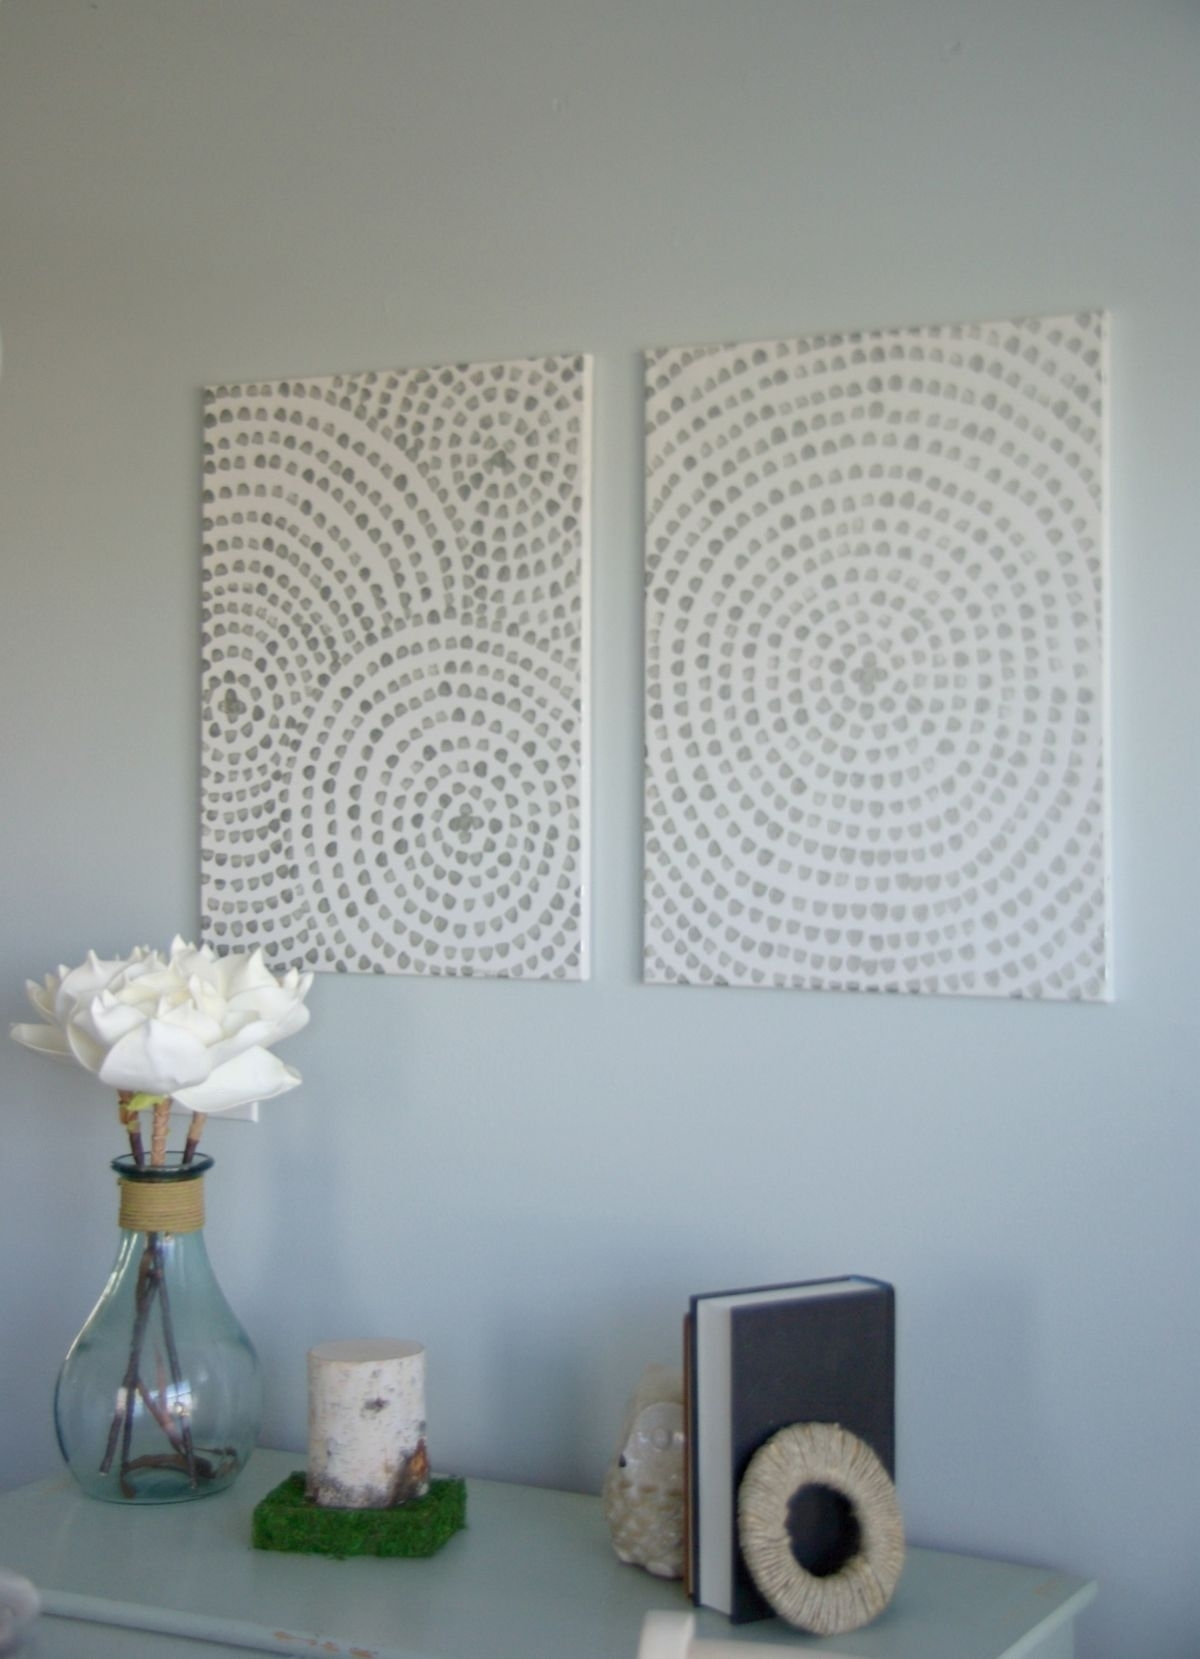 Diy Canvas Wall Art – A Low Cost Way To Add Art To Your Home | Diy For Latest Diy Abstract Canvas Wall Art (View 7 of 20)